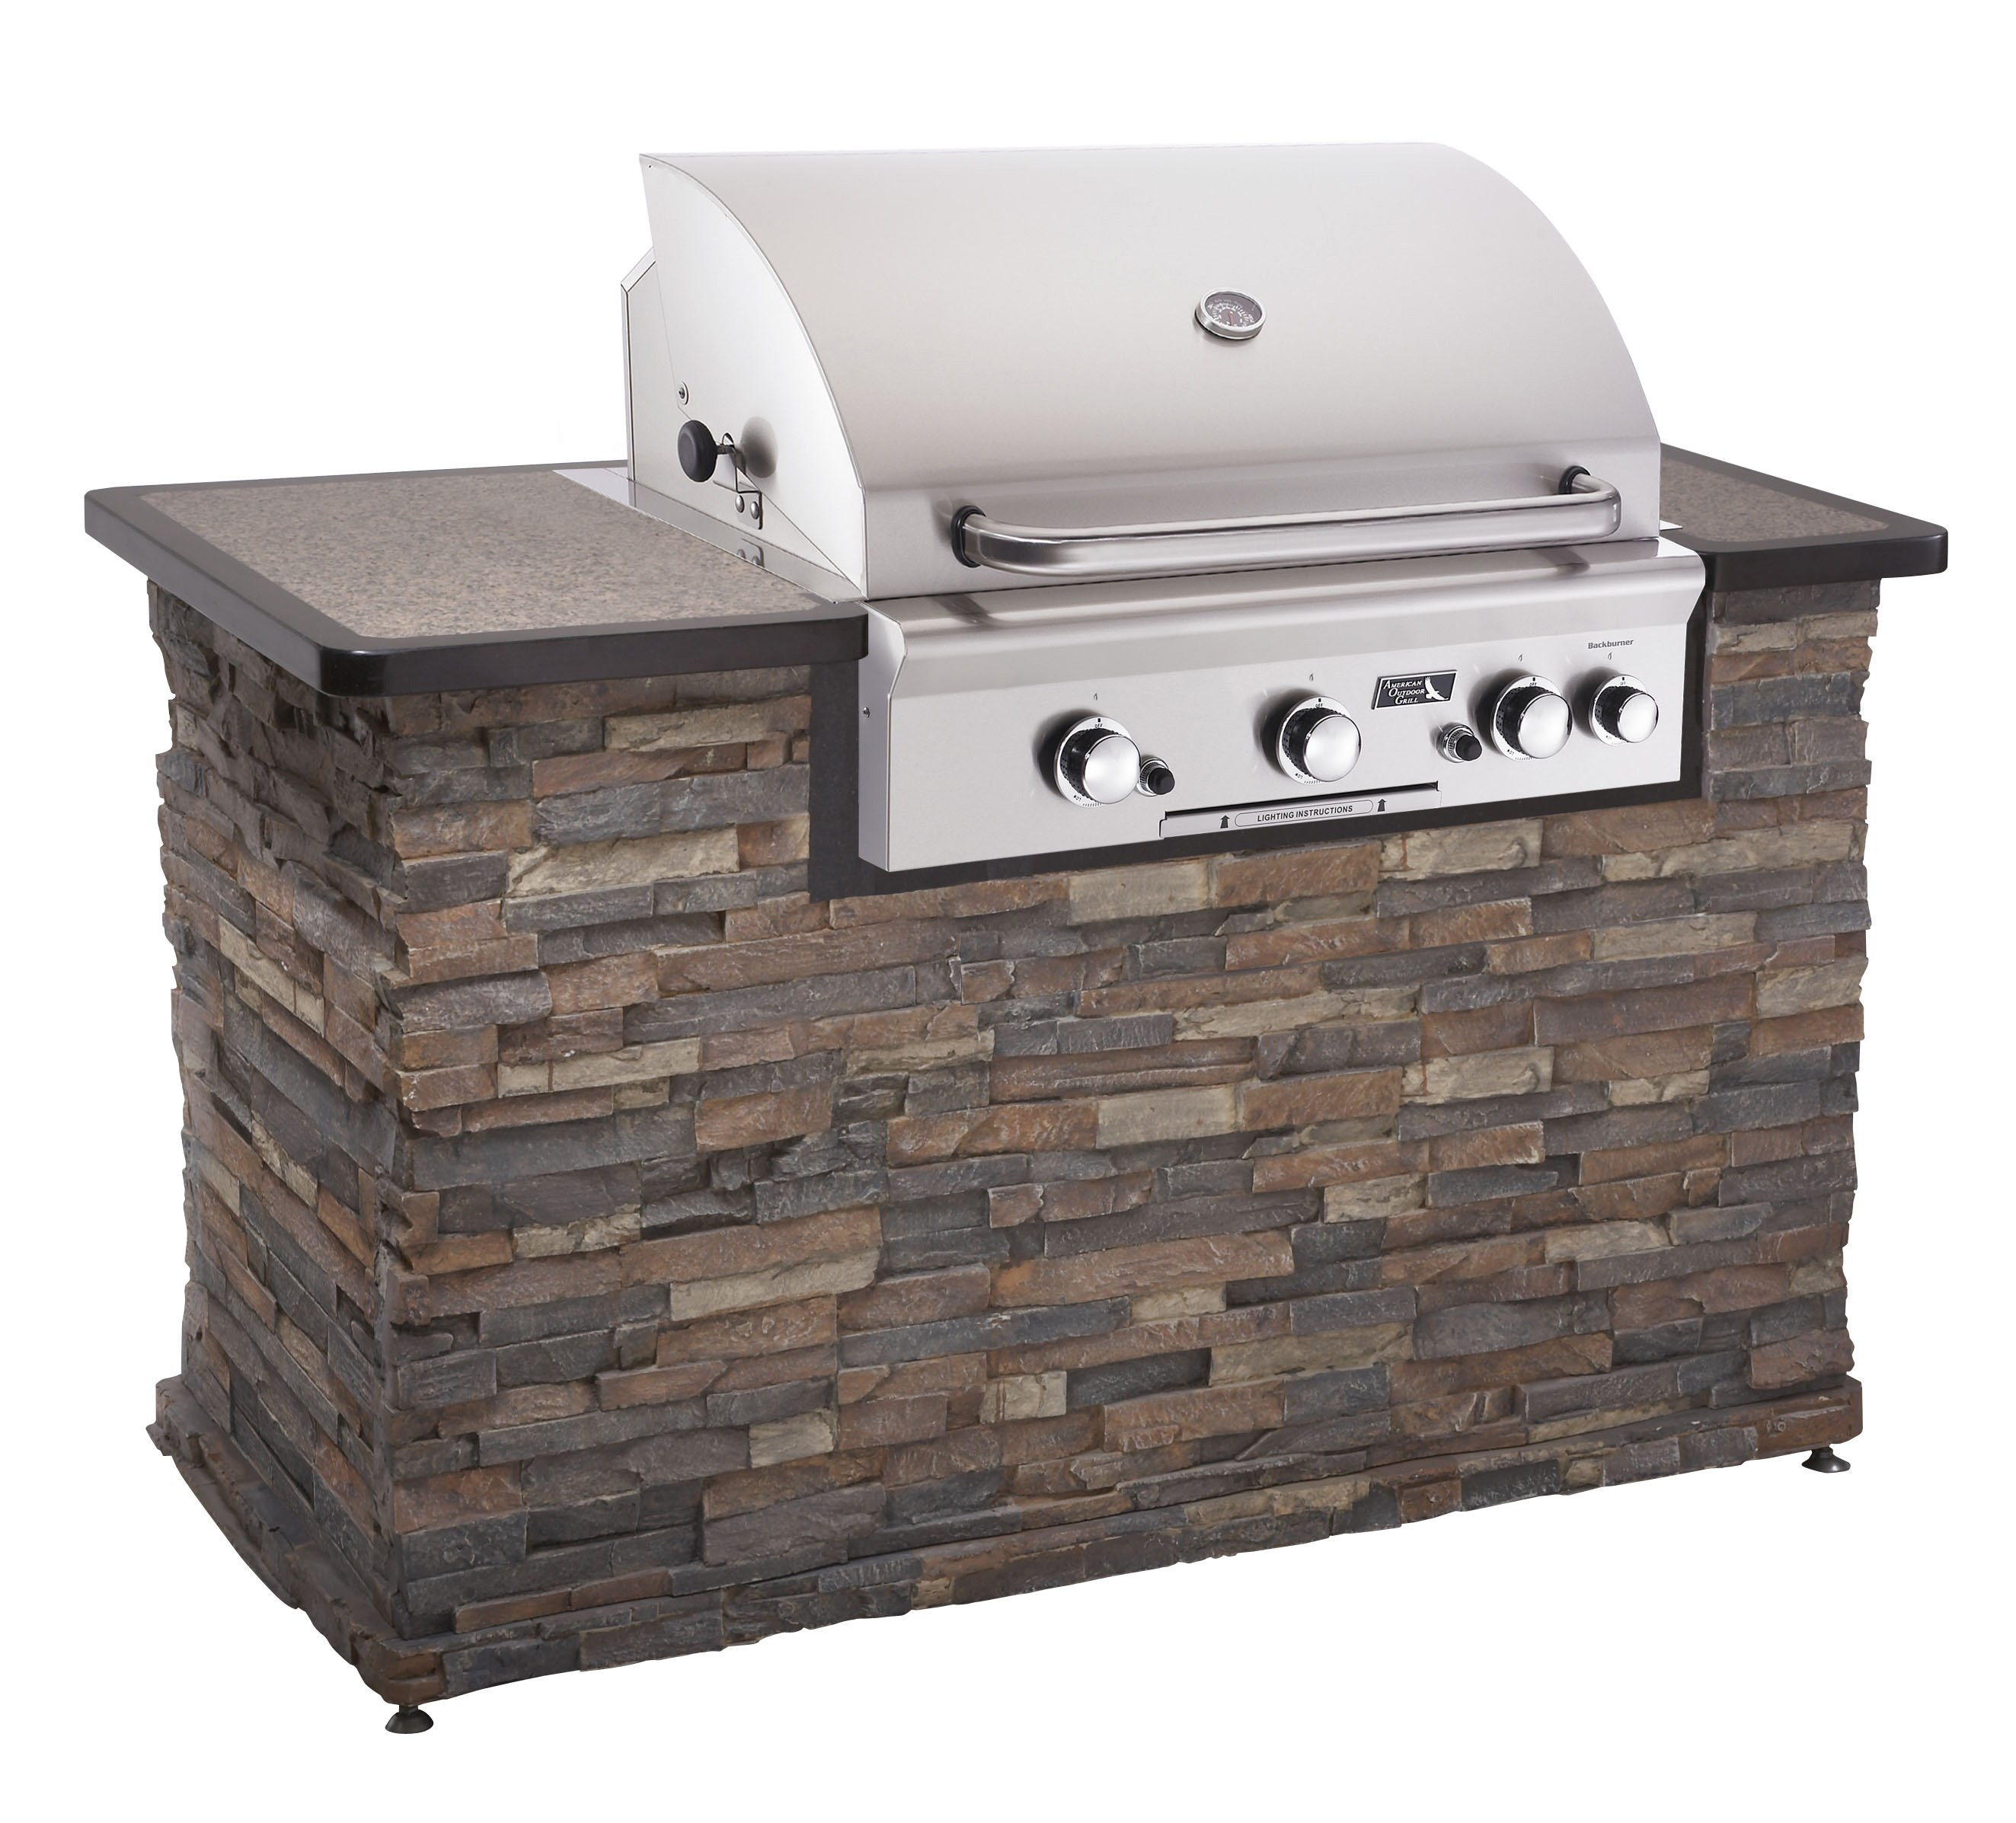 American Outdoor Grill 36 Quot Built In Coastroad Online